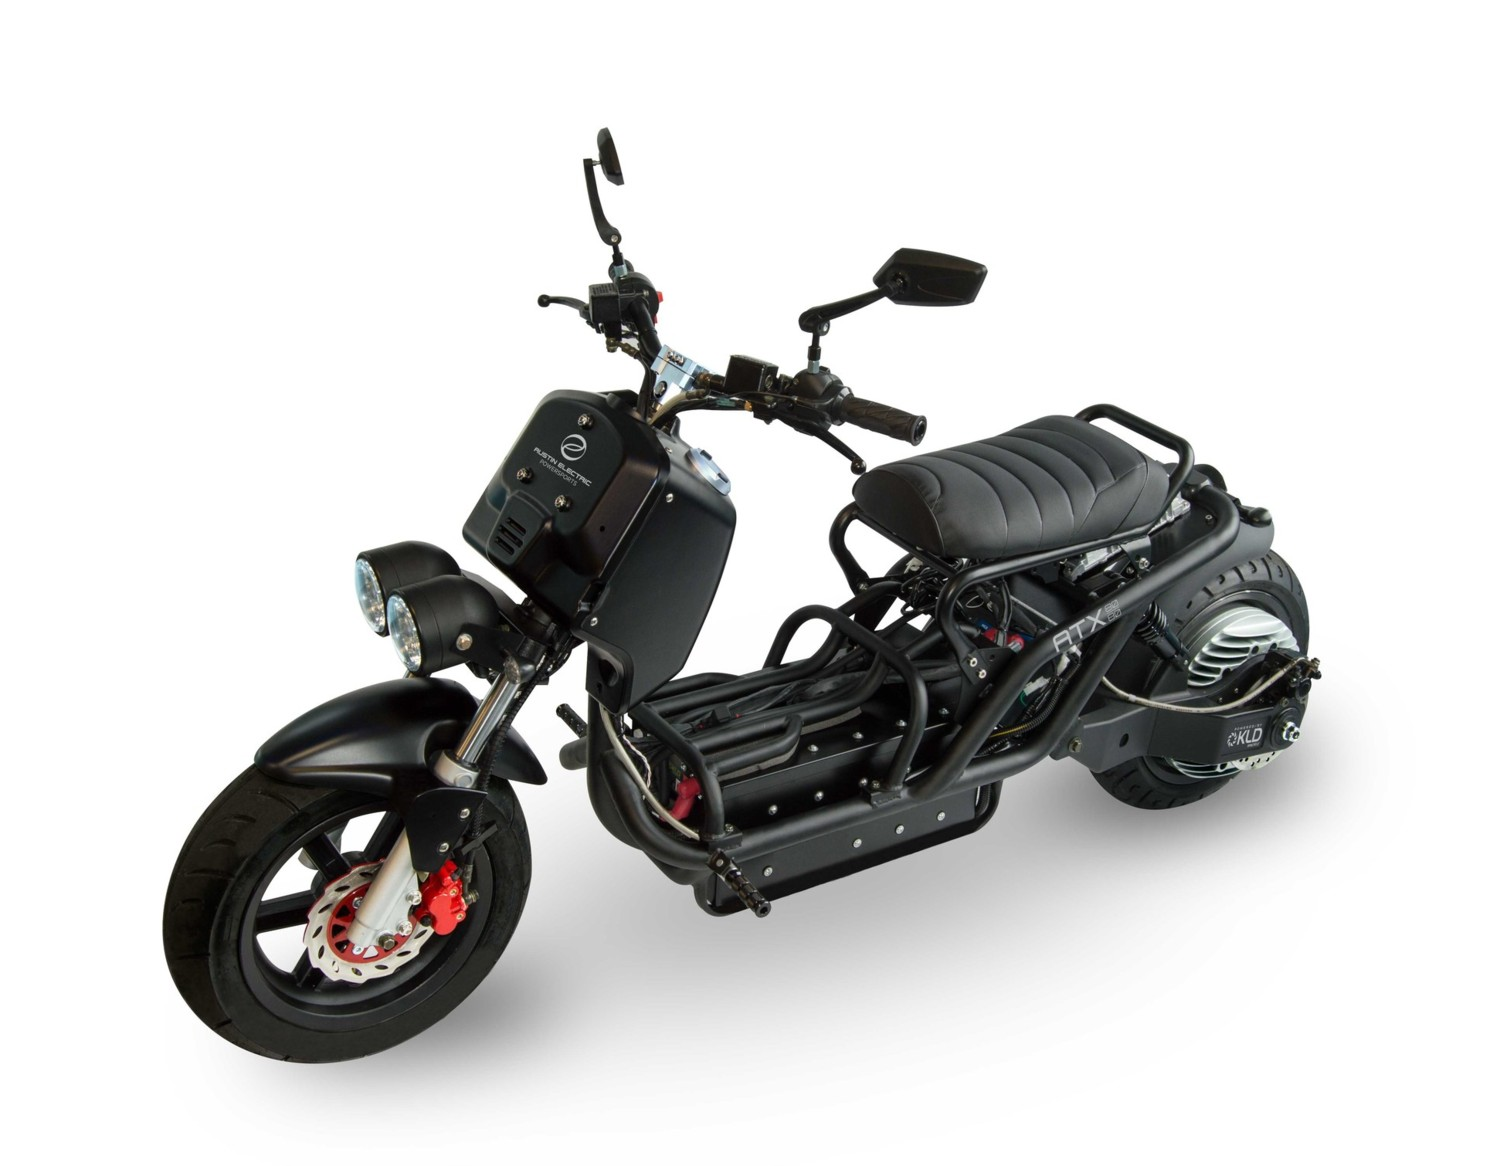 atx 8080 the ruckus looks rugged electric scooter   autoevolution